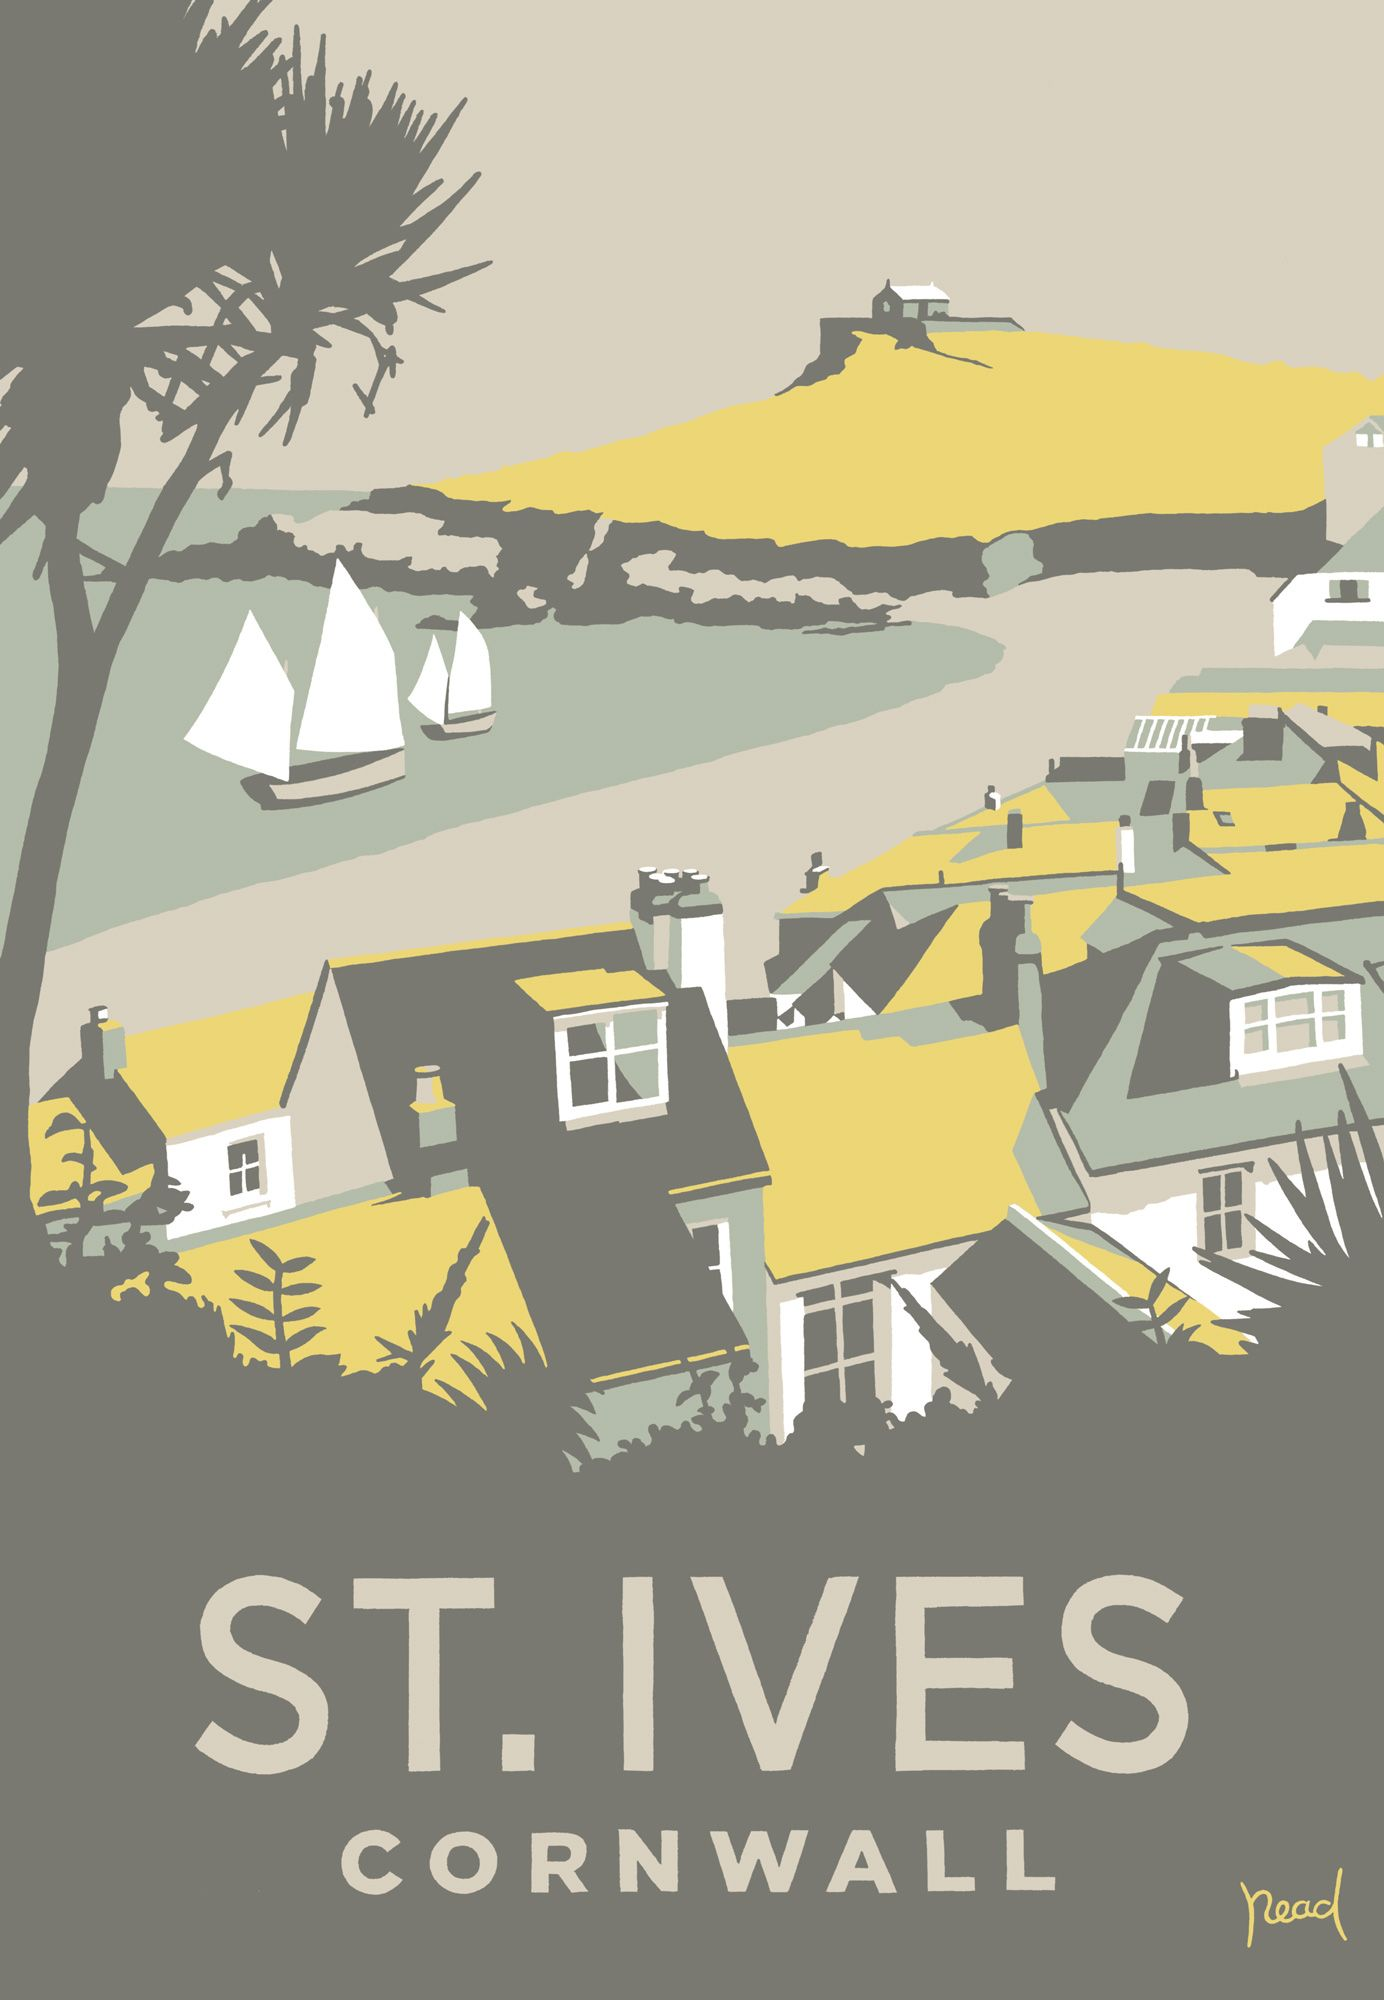 St Ives Porthmeor (SR25) Coastal Scenes Art Print by Steve Read http://www.whistlefish.com/product/sr25f-st-ives-2-framed-by-steve-read #stives #cornwall #artprint